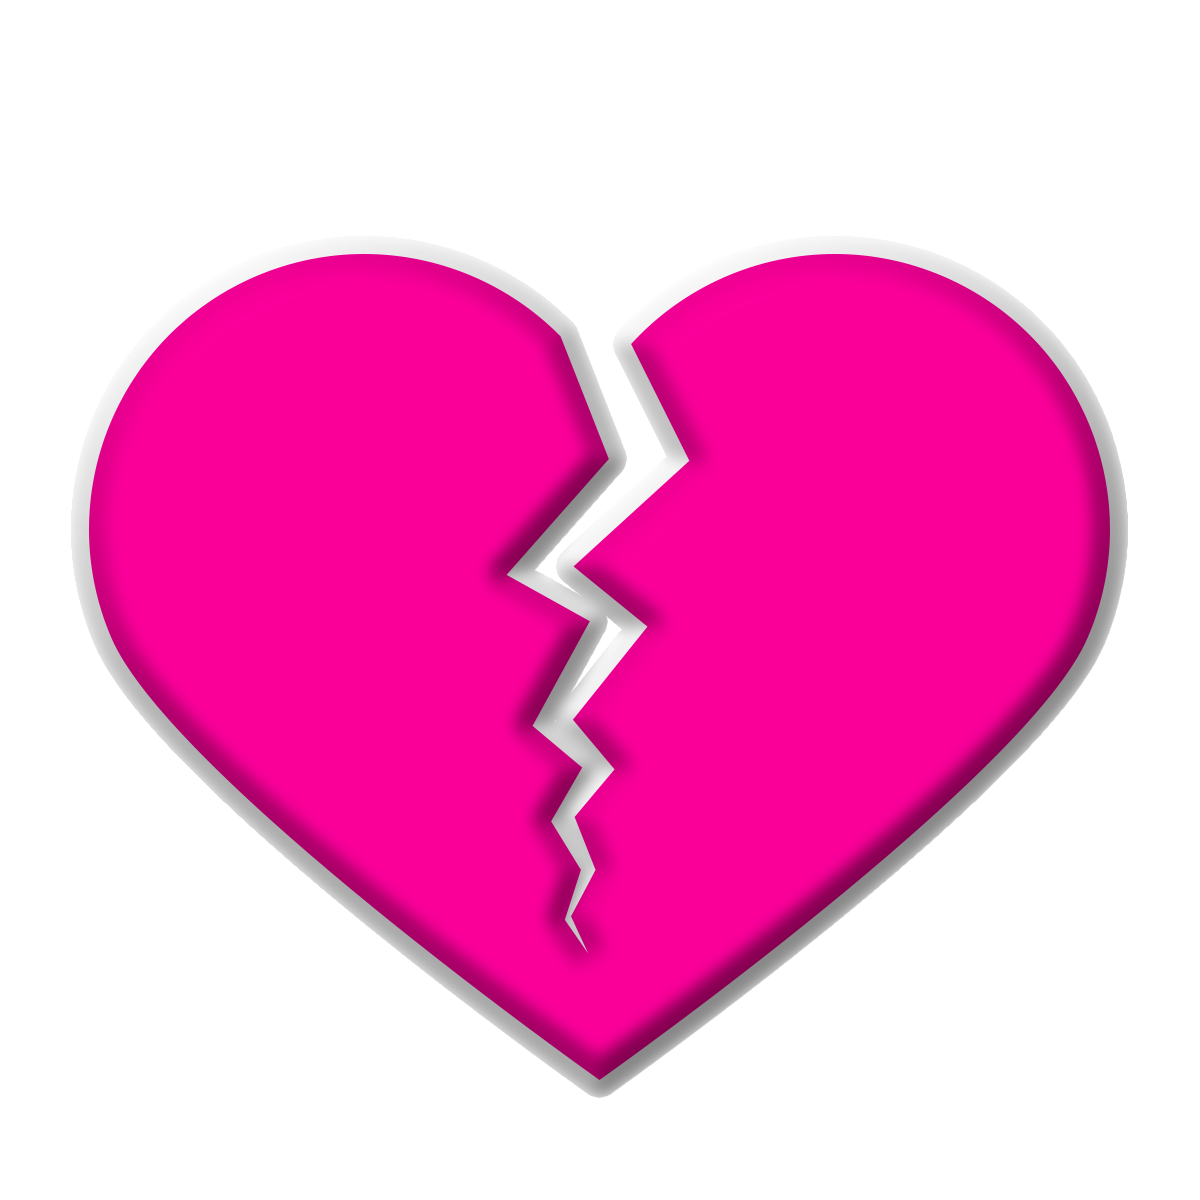 Free Download High Quality Lovely Pink Broken Heart Png Transparent Background Image This Is Vector Lovely 3d Pn Broken Heart Valentine Heart Background Images